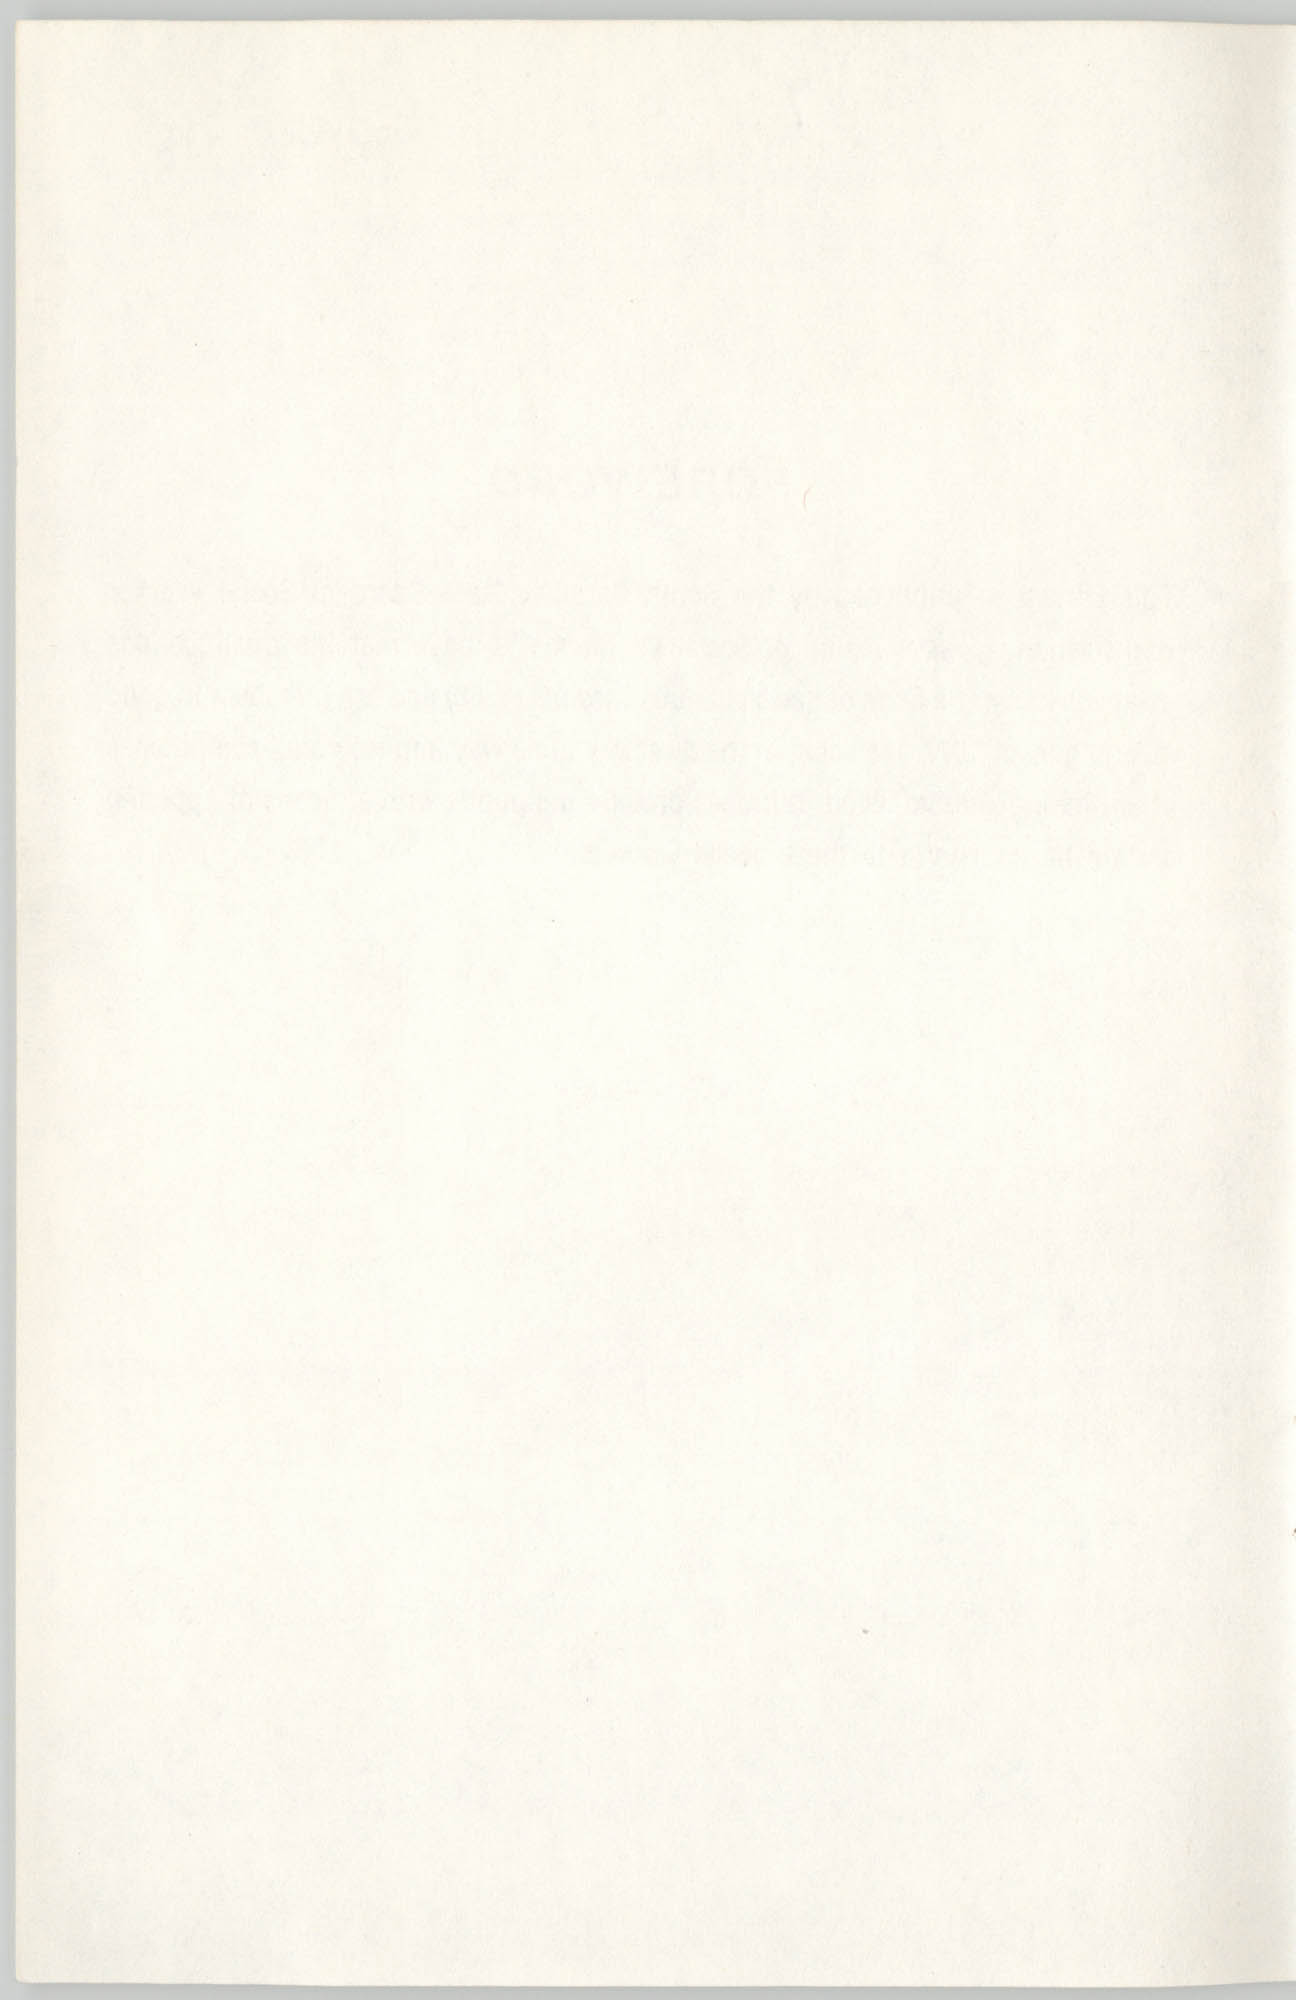 State of South Carolina Directory of Registered Social Workers, 1977, Blank